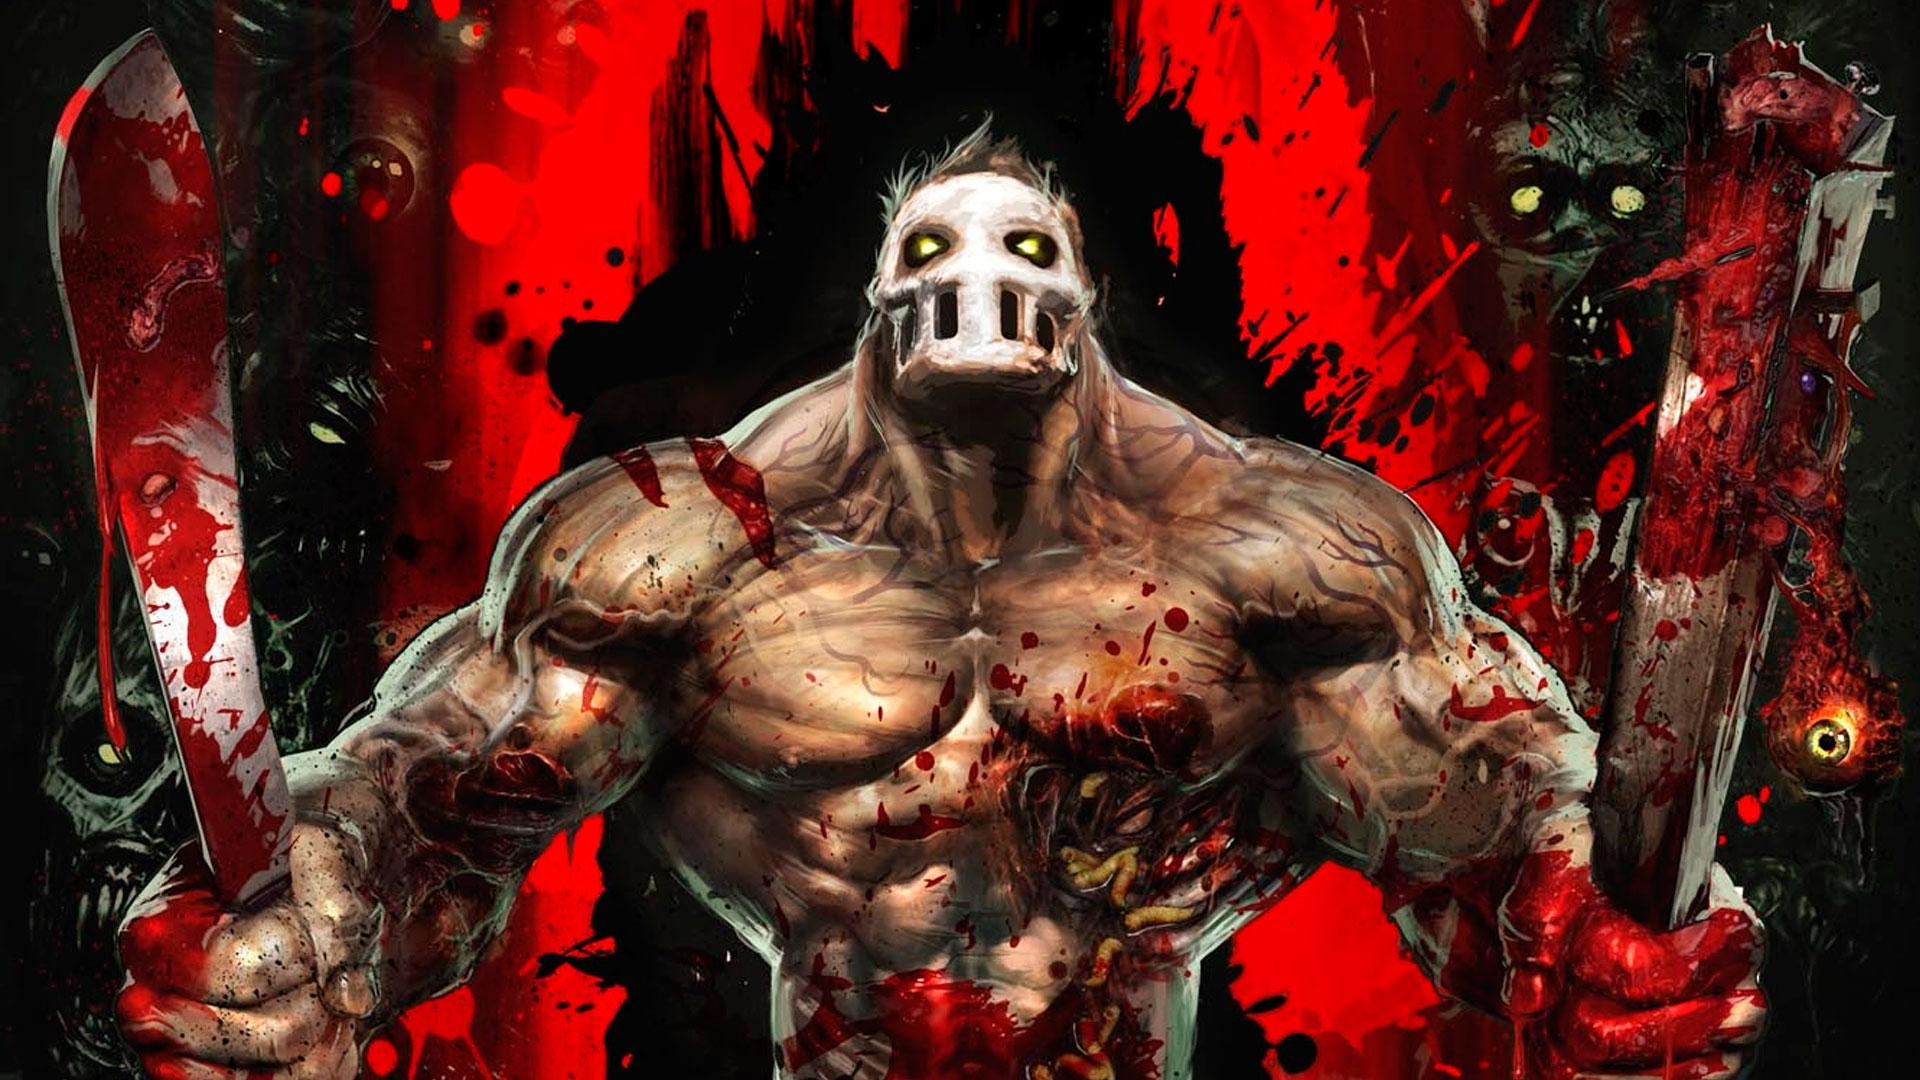 Splatterhouse 2010 Bandai Namco is enjoyable grindhouse gore and violence with heart and enjoyable characters